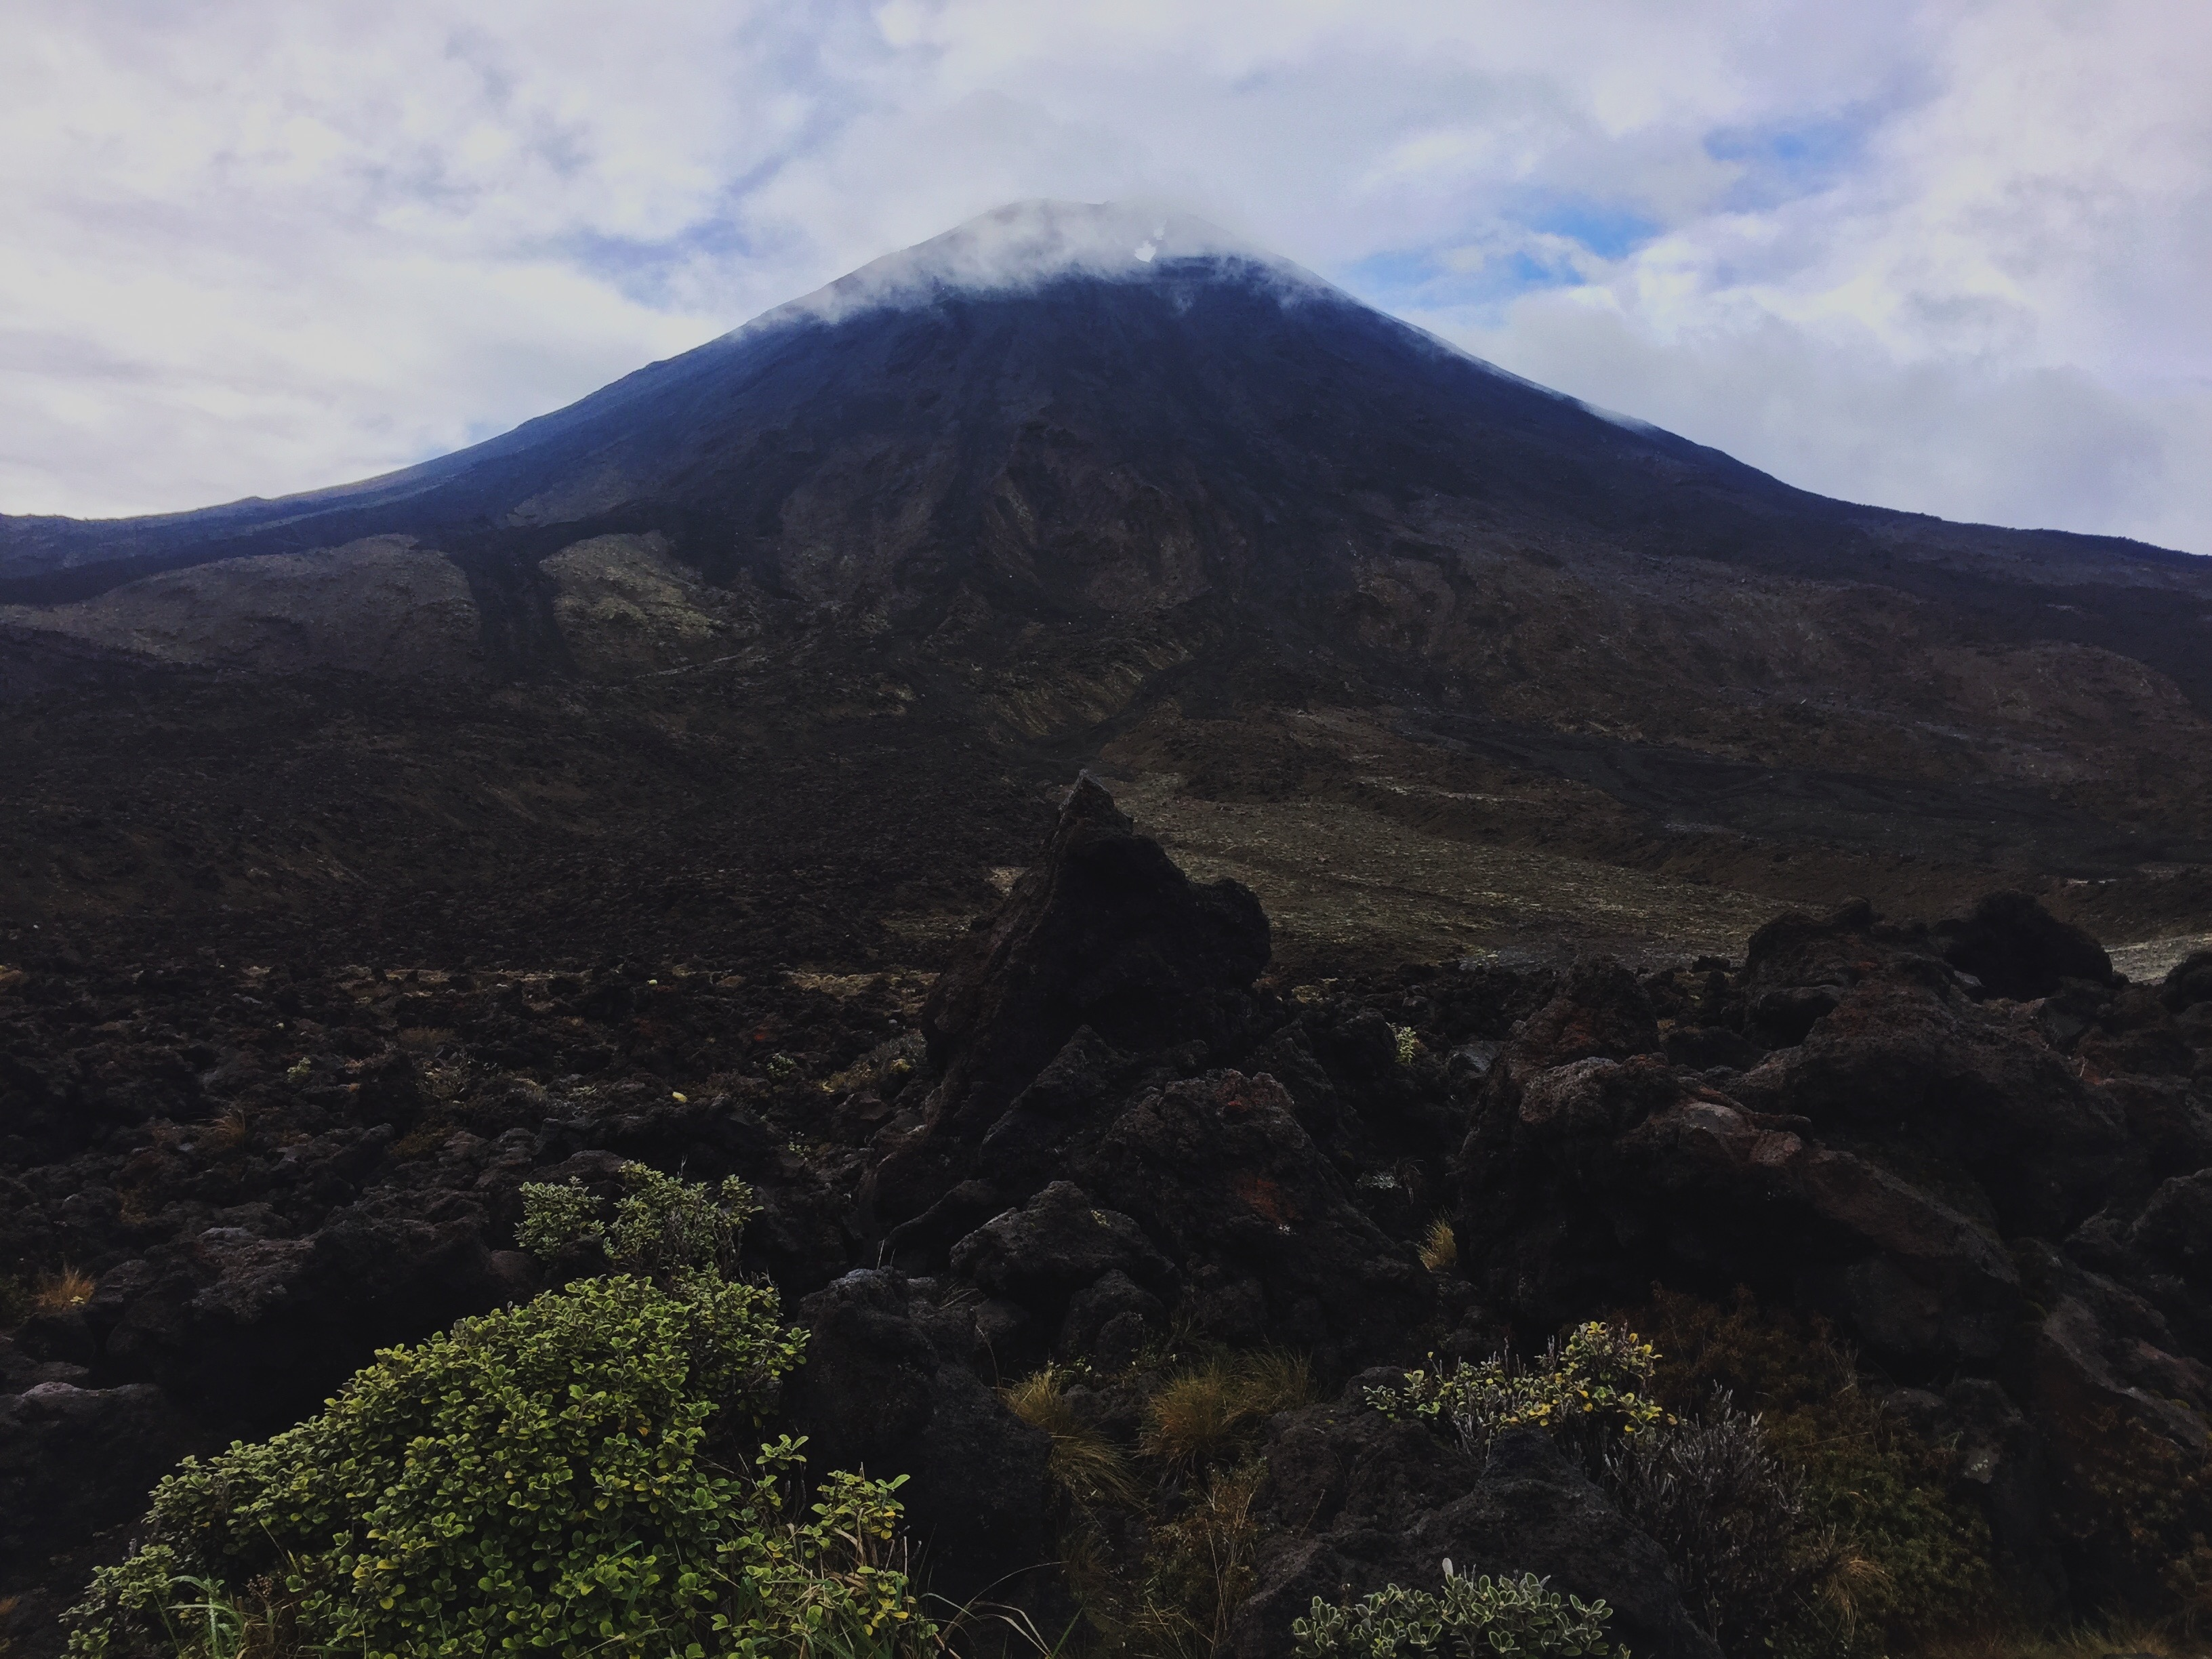 Mount Ngauruhoe - Tongariro Alpine Crossing